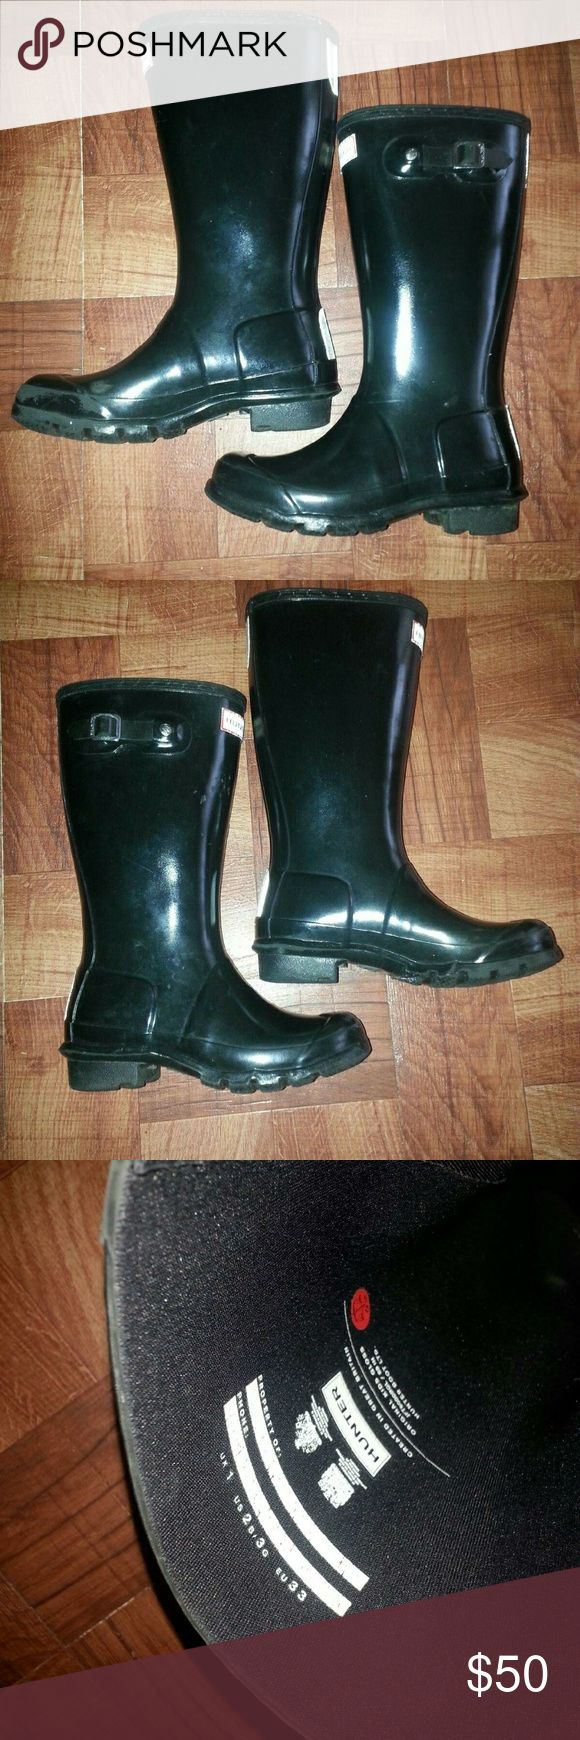 Hunter Boots Unisex Black Big Kid Shiny Hunter Boots great for boy or girl. Some stratches and scruffs but still have life left. Can be cleaned with Hunter Boots cleaning spray. Fits boys size 2y or girls size 3y.  Hunter Shoes Rain & Snow Boots